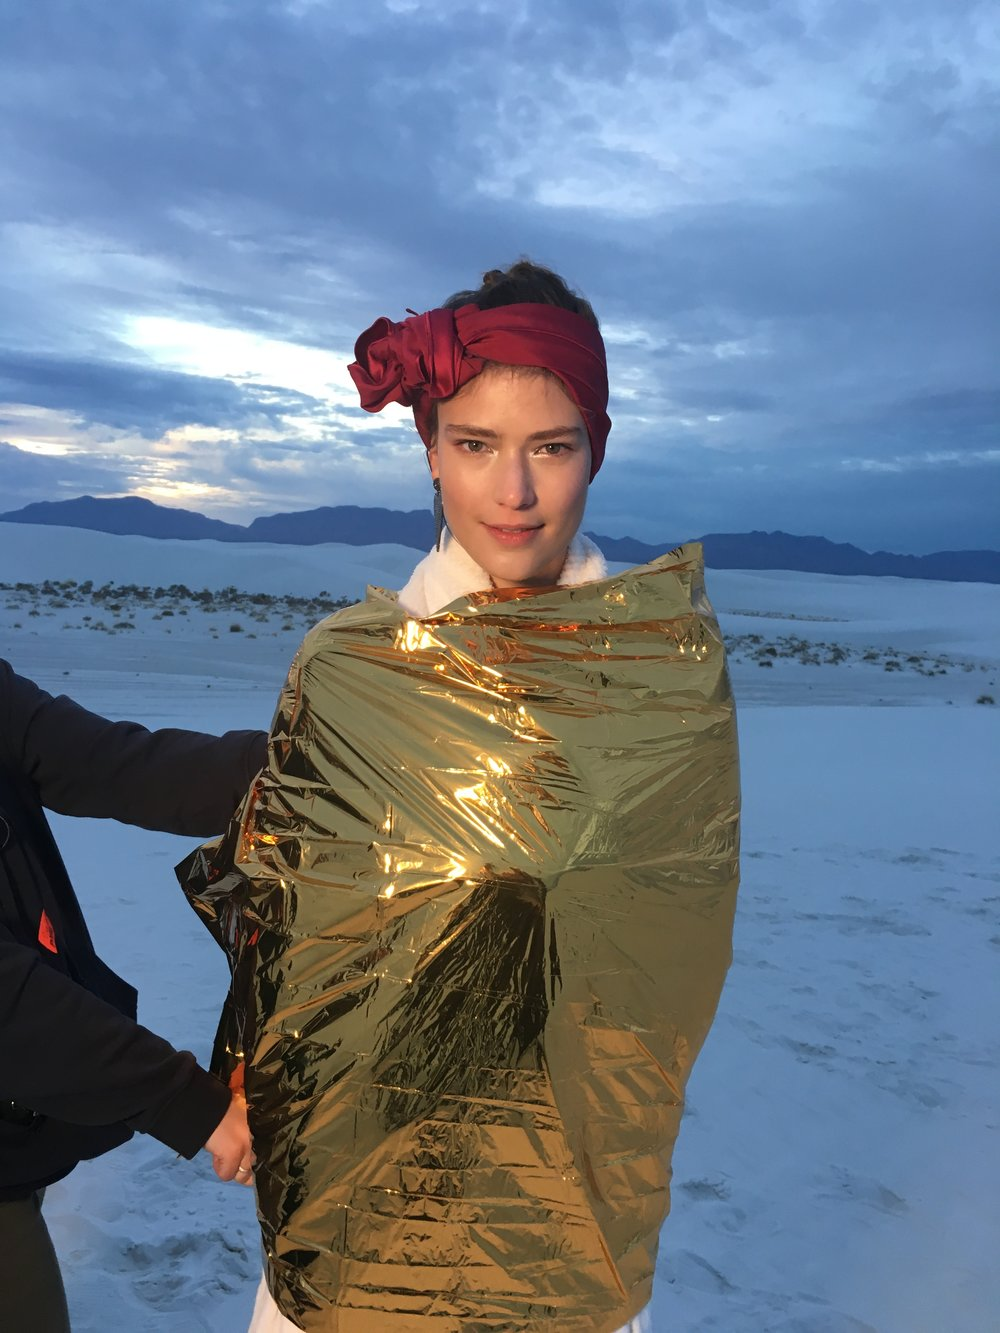 After sunset, staying warm in a thermal blanket with Bloomingdales